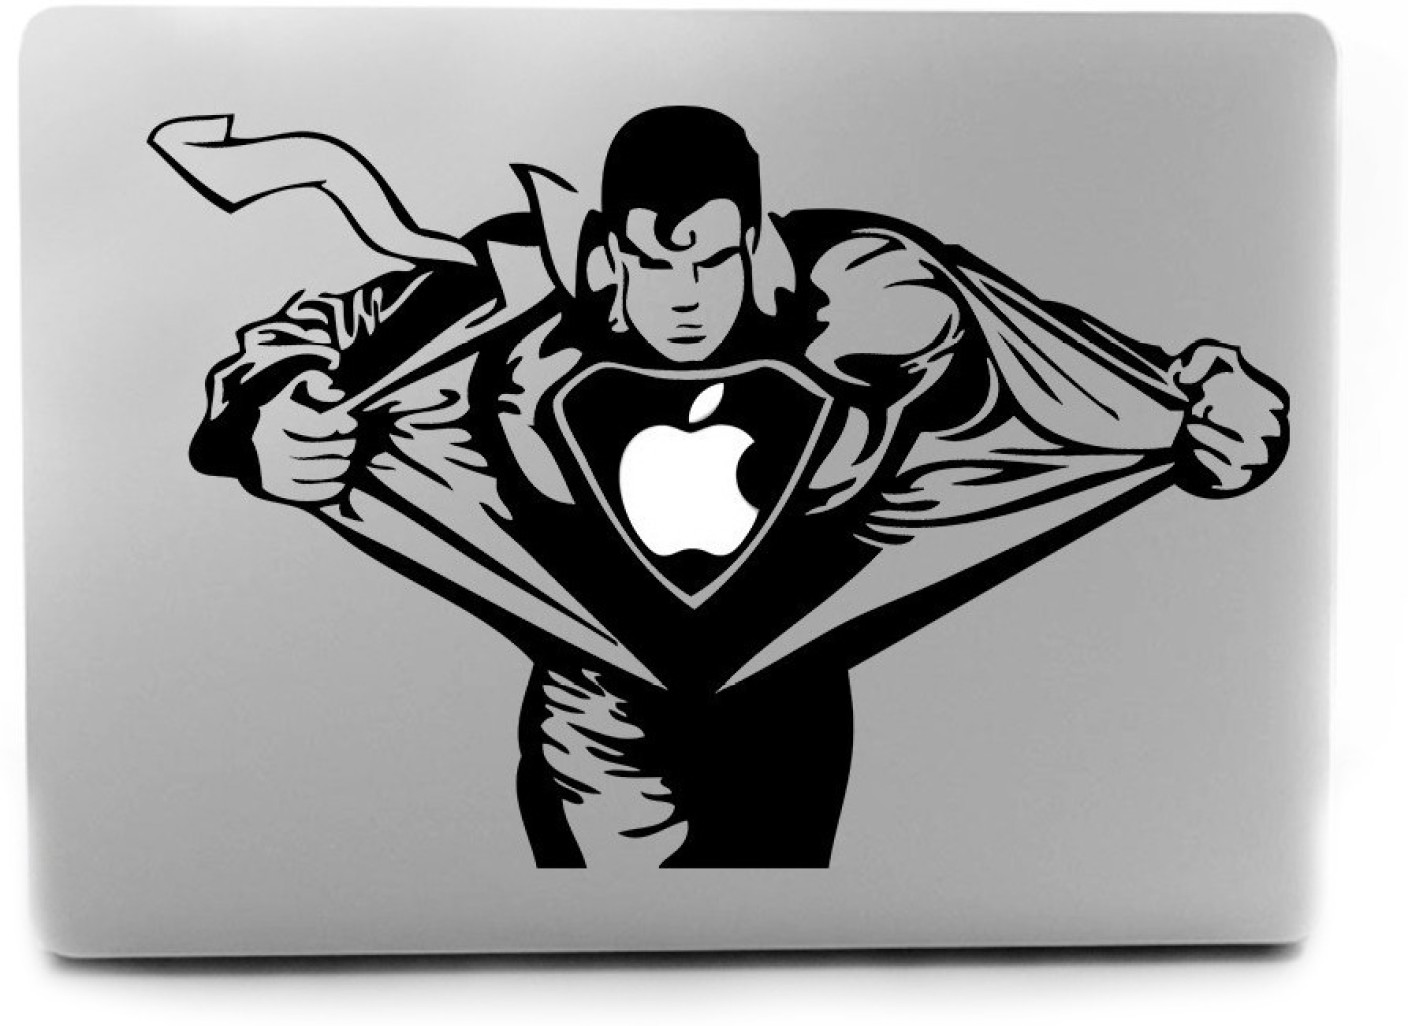 automers superman apple sticker skin high quality vinyl laptop share